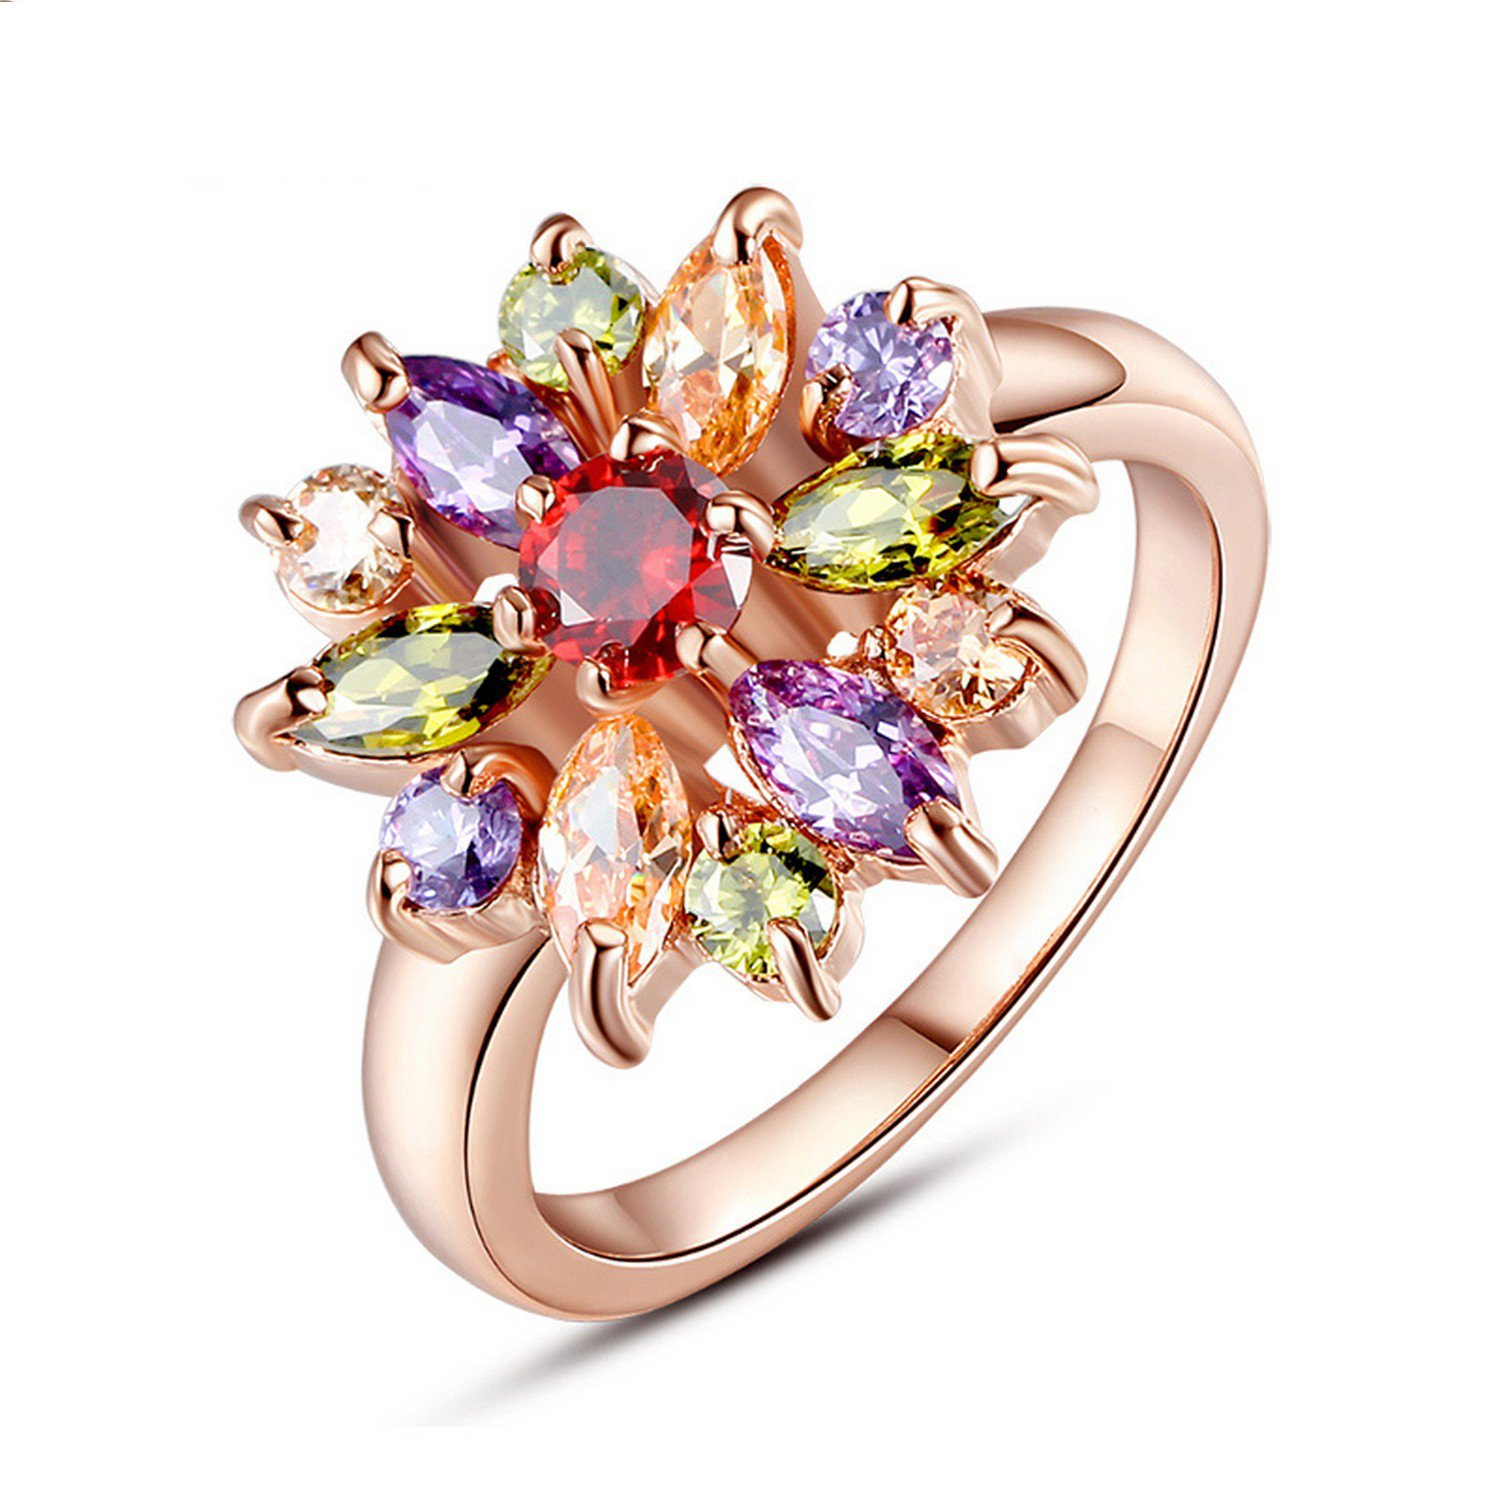 Slyq Jewelry 3 Colors Rose Gold Color Finger Ring engagement rings fashion rings size 11